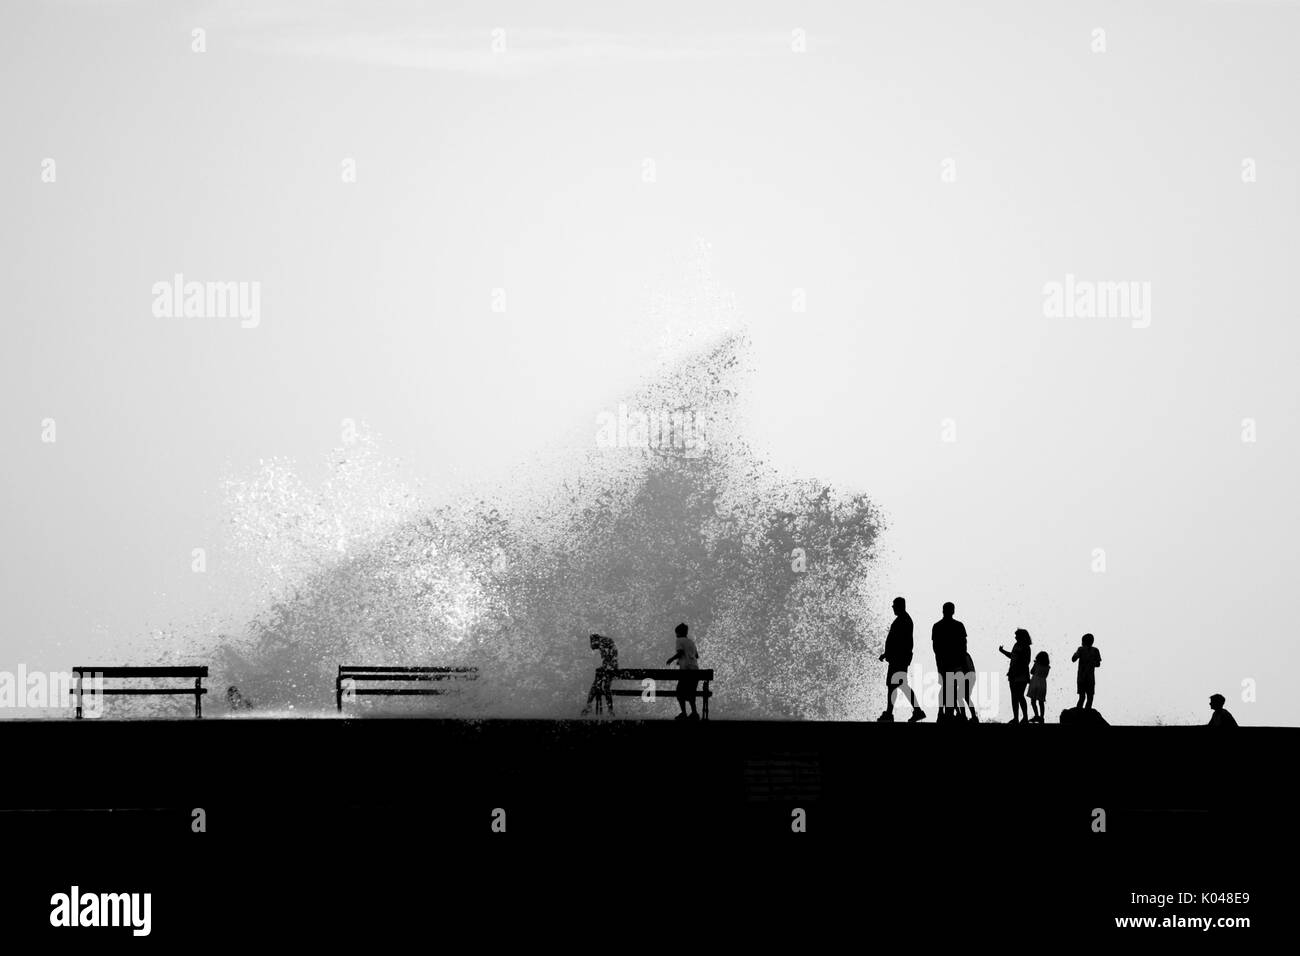 People silhouettes on the breakwater during sea splashing Stock Photo